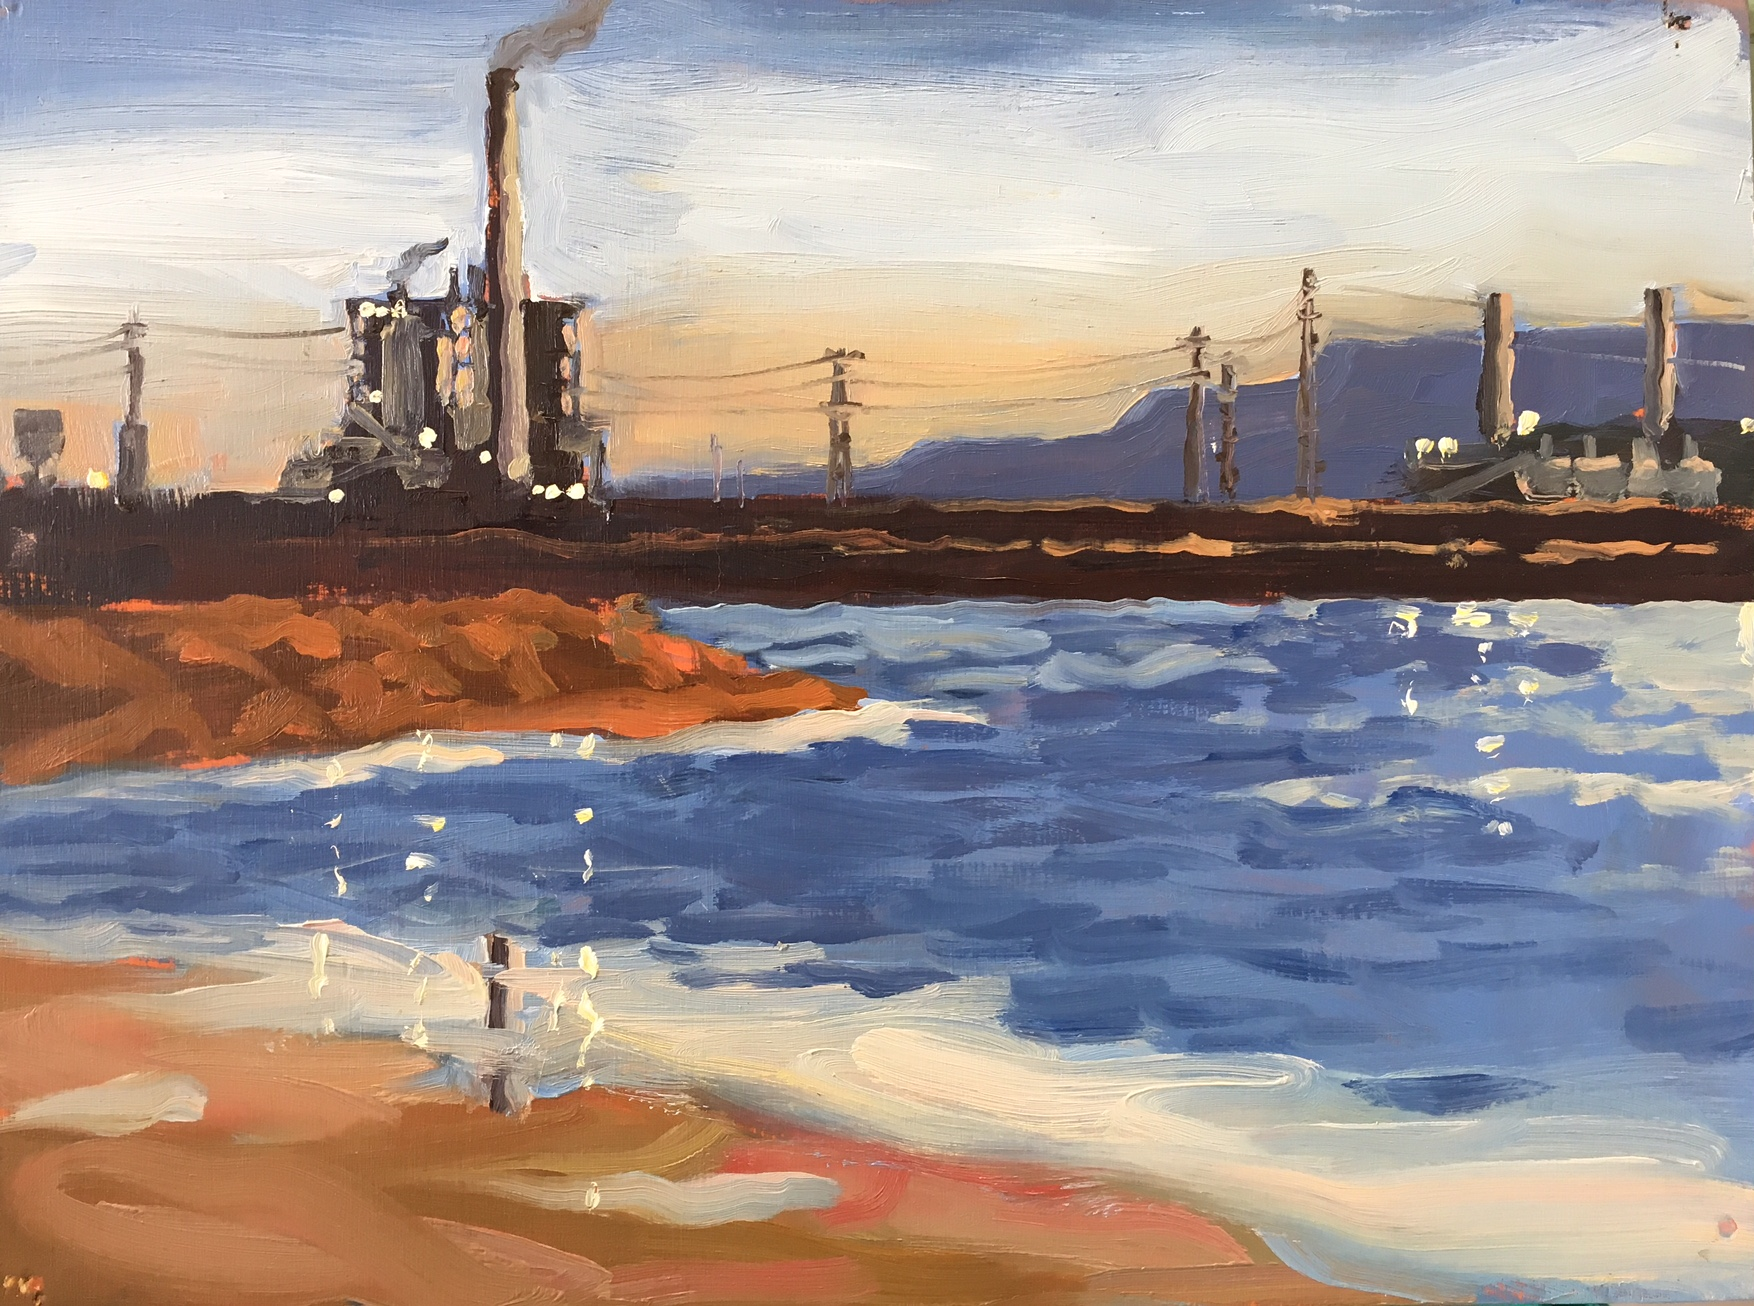 Northern power station from the cooling ponds, Oil on panel, 30 x 40 cm, 2013